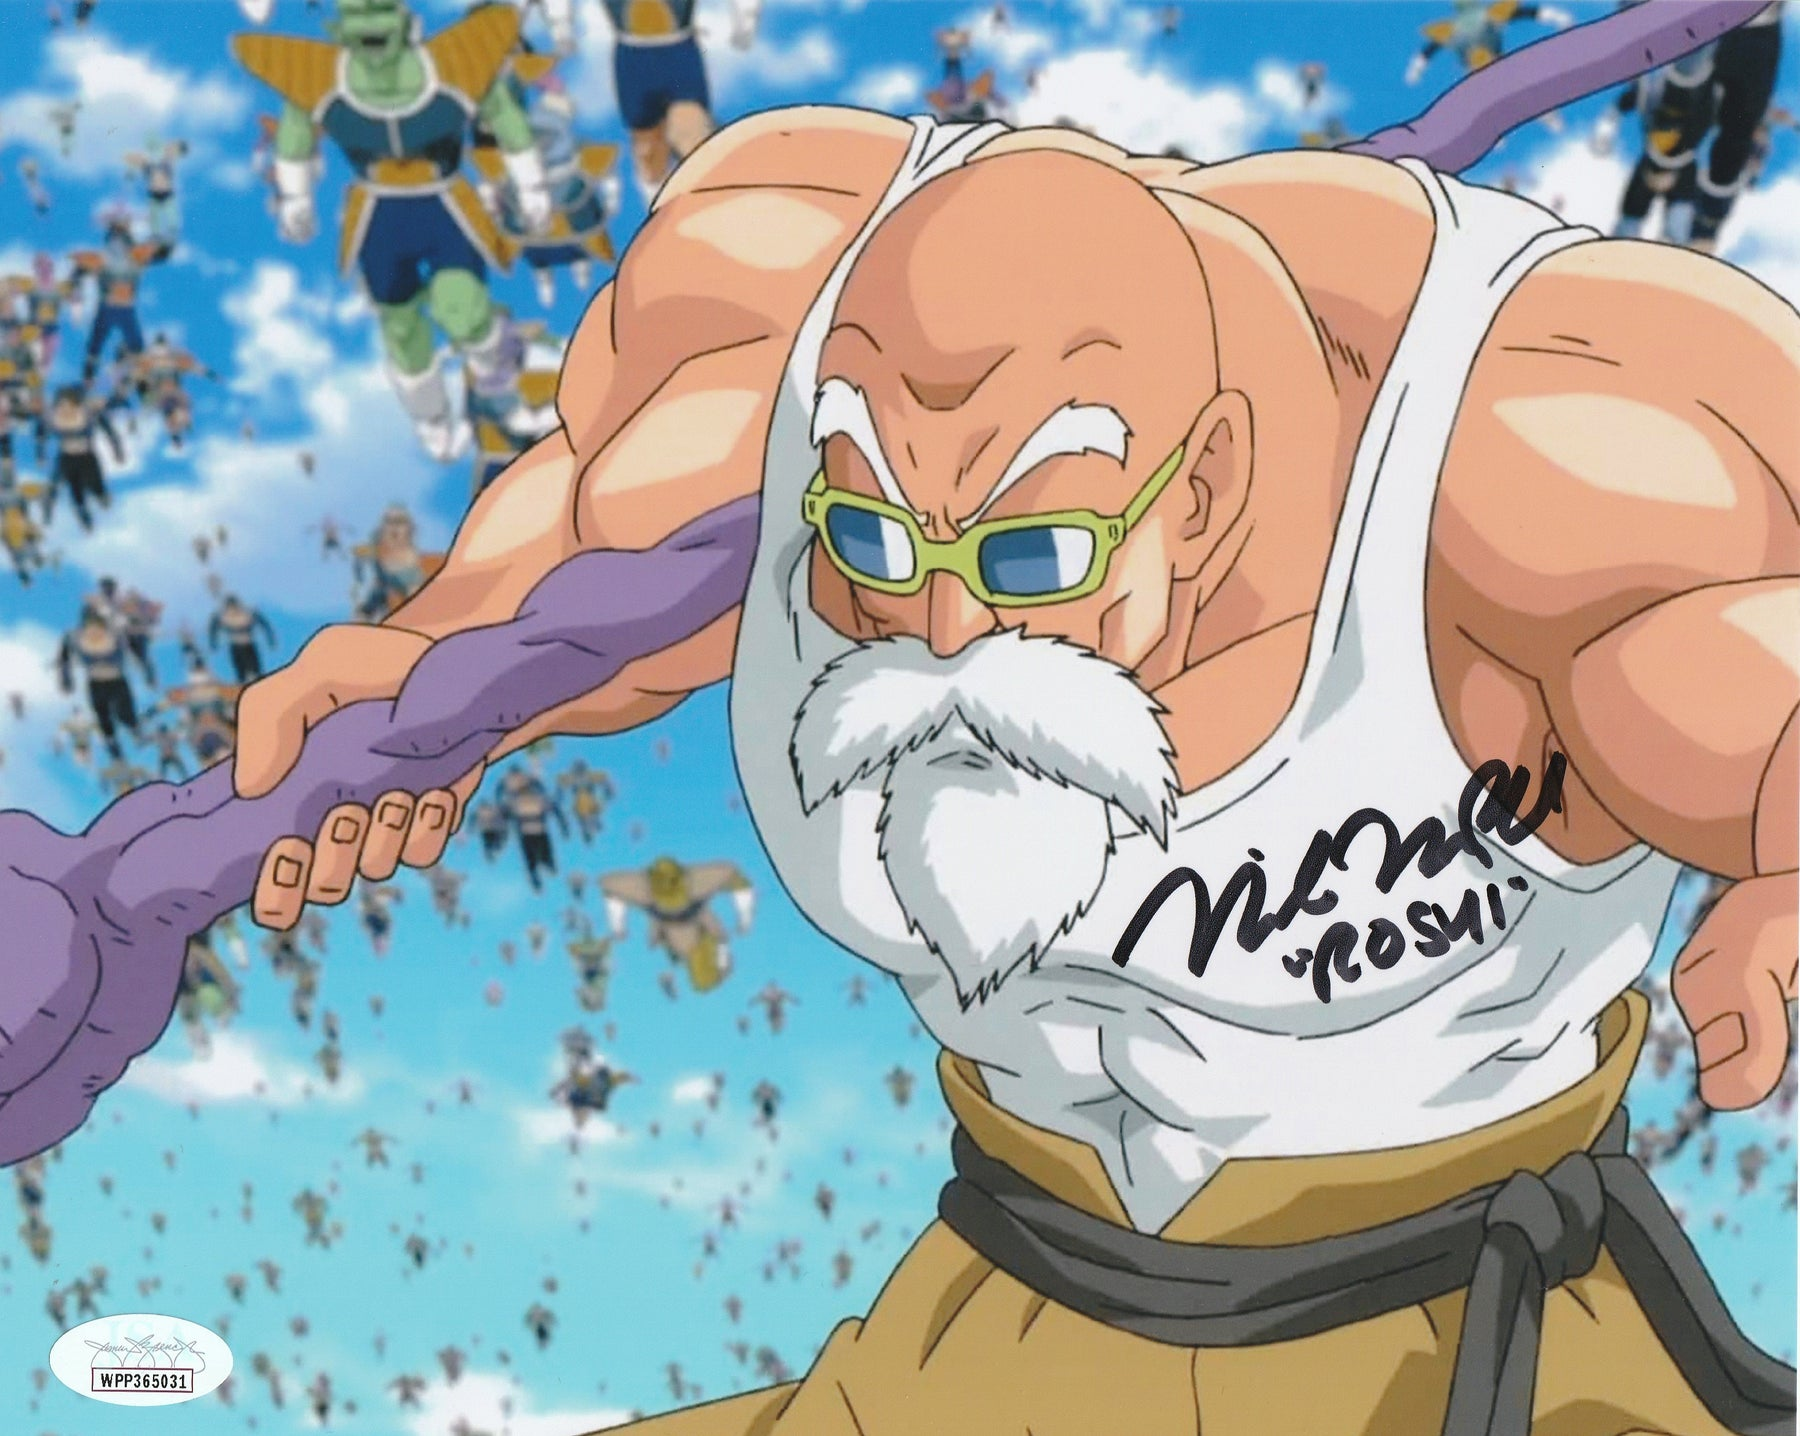 Mike McFarland Autograph 8X10 Dragon Ball Z Master Roshi Signed Photo JSA COA